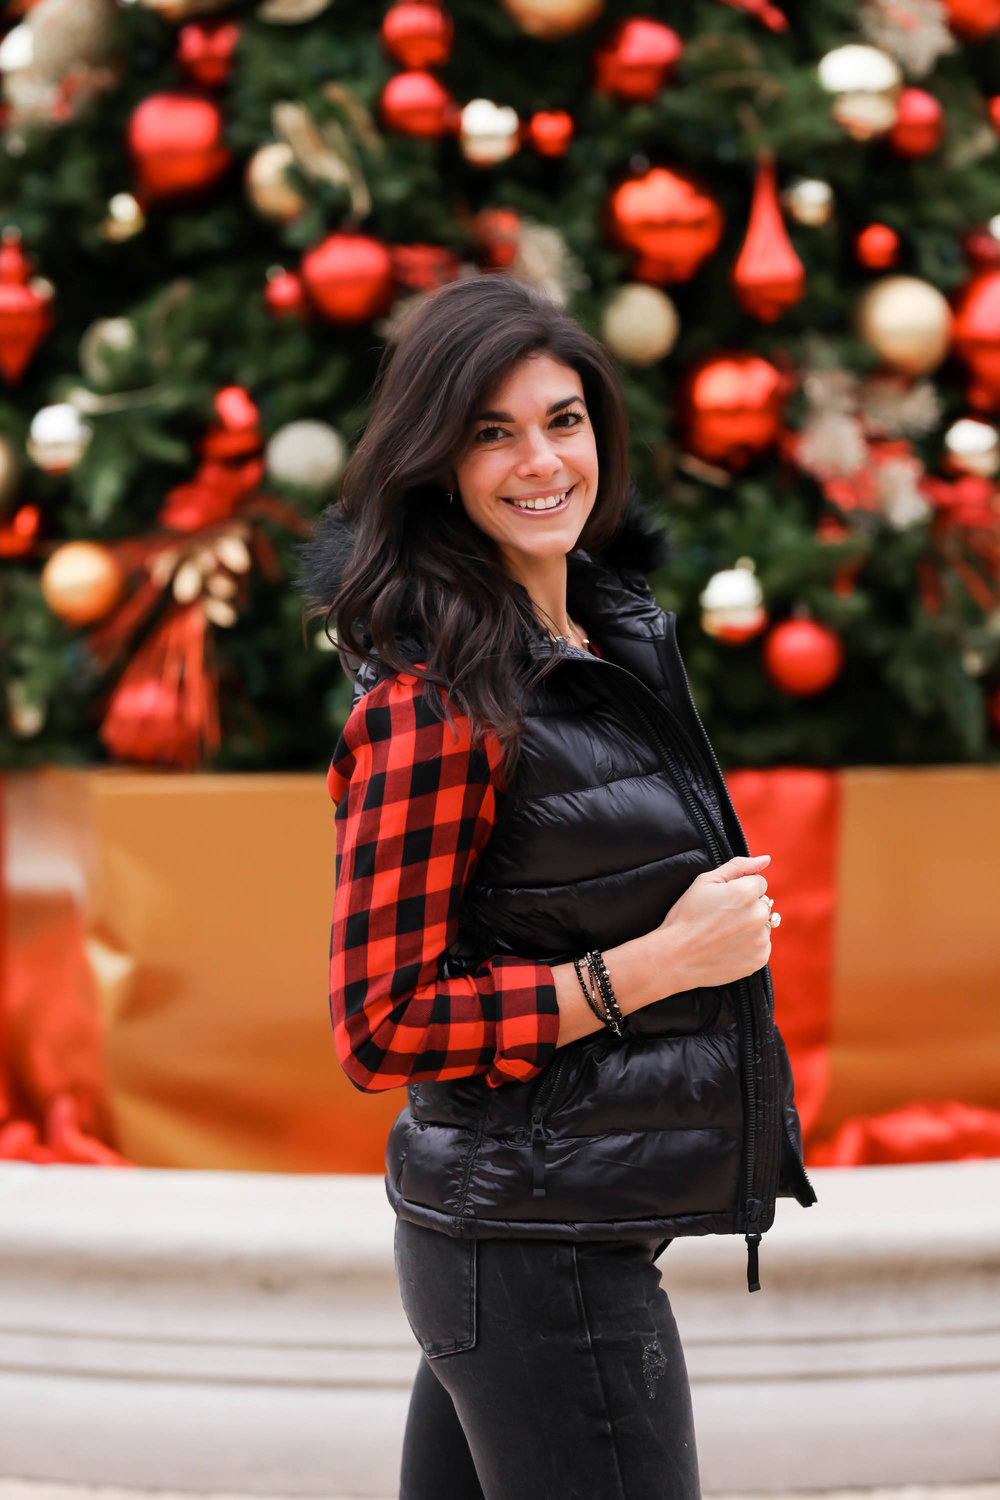 buffalo-plaid-button-down-puffer-vest-winter-style-lauren-schwaiger-style-blogger.jpg